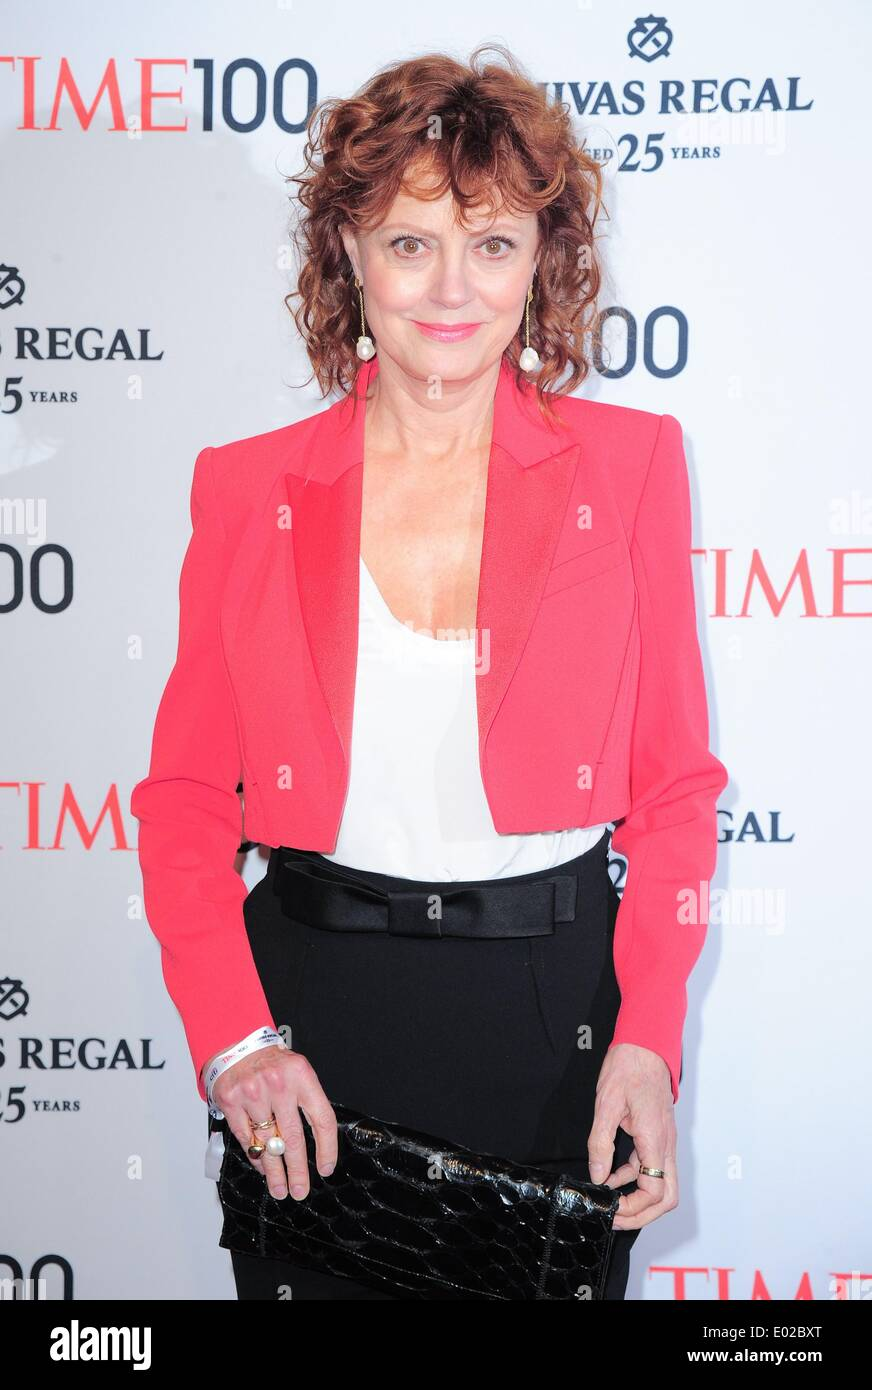 New York, NY, USA. 29th Apr, 2014. Susan Sarandon at arrivals for Time 100 Gala Dinner, Jazz at Lincoln Center's Fredrick P. Rose Hall, New York, NY April 29, 2014. Credit:  Gregorio T. Binuya/Everett Collection/Alamy Live News - Stock Image